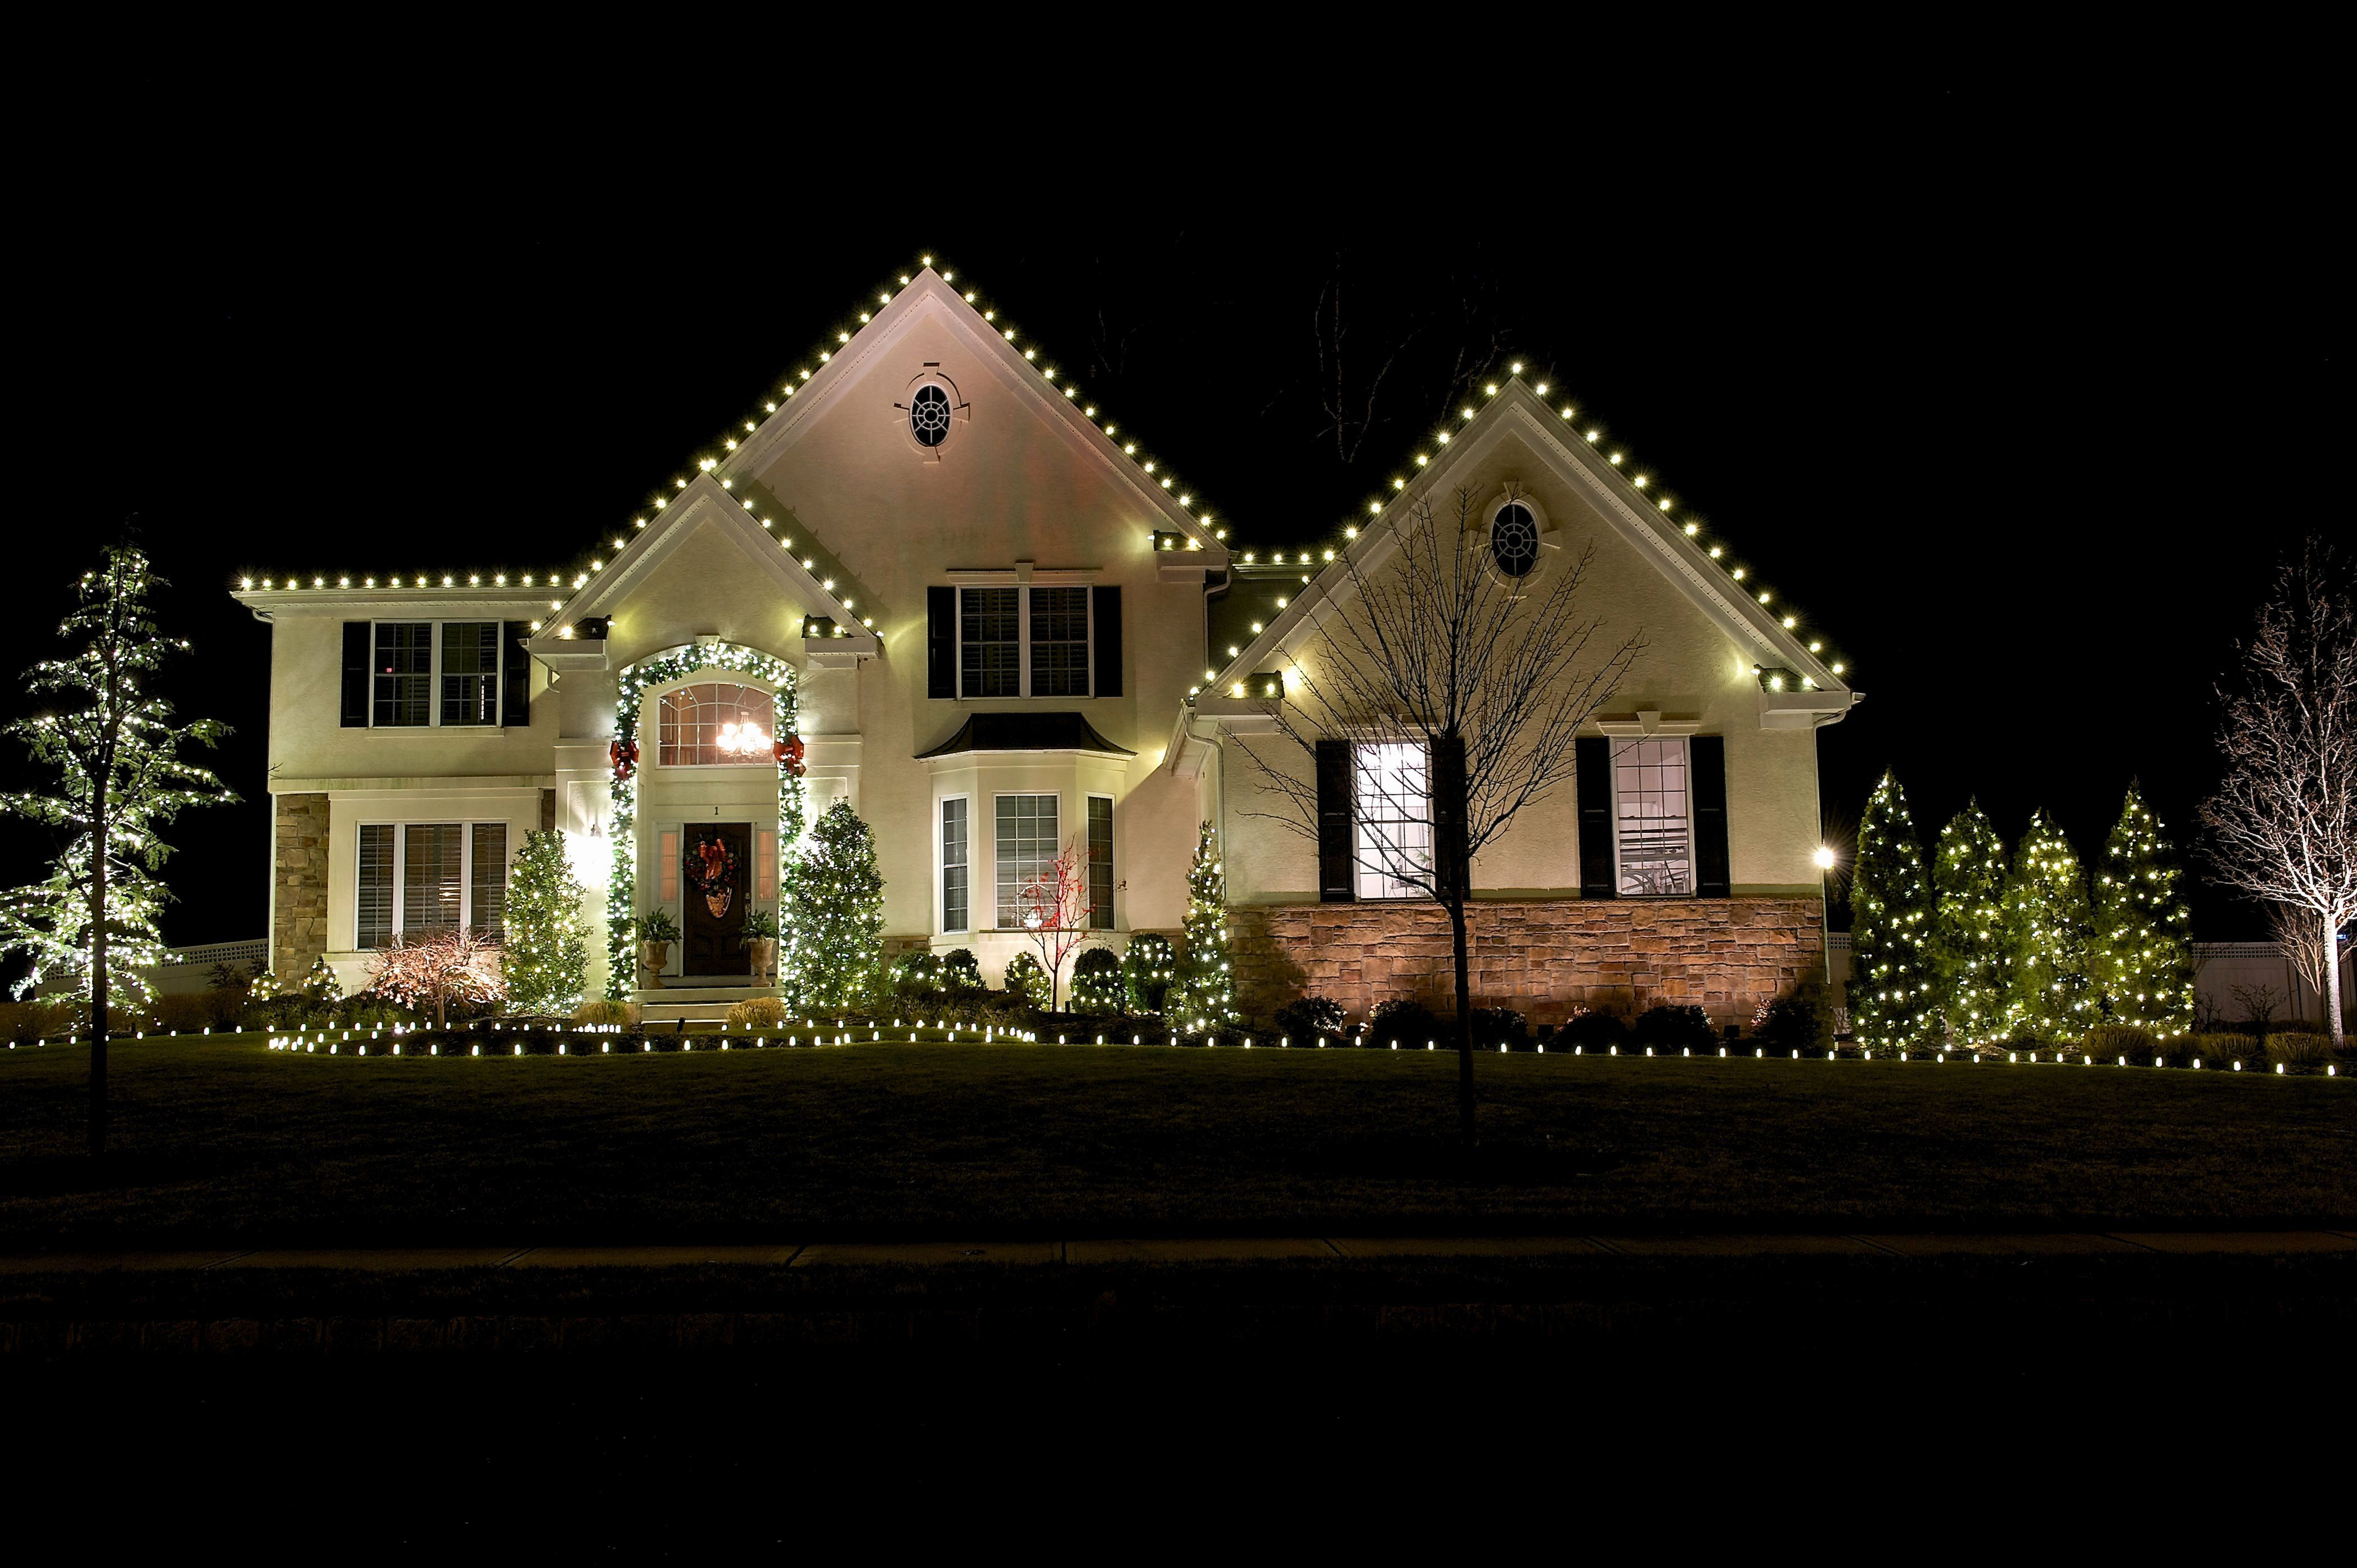 35 Awesome Backyard Design With Christmas Lights Ideas Dexorate